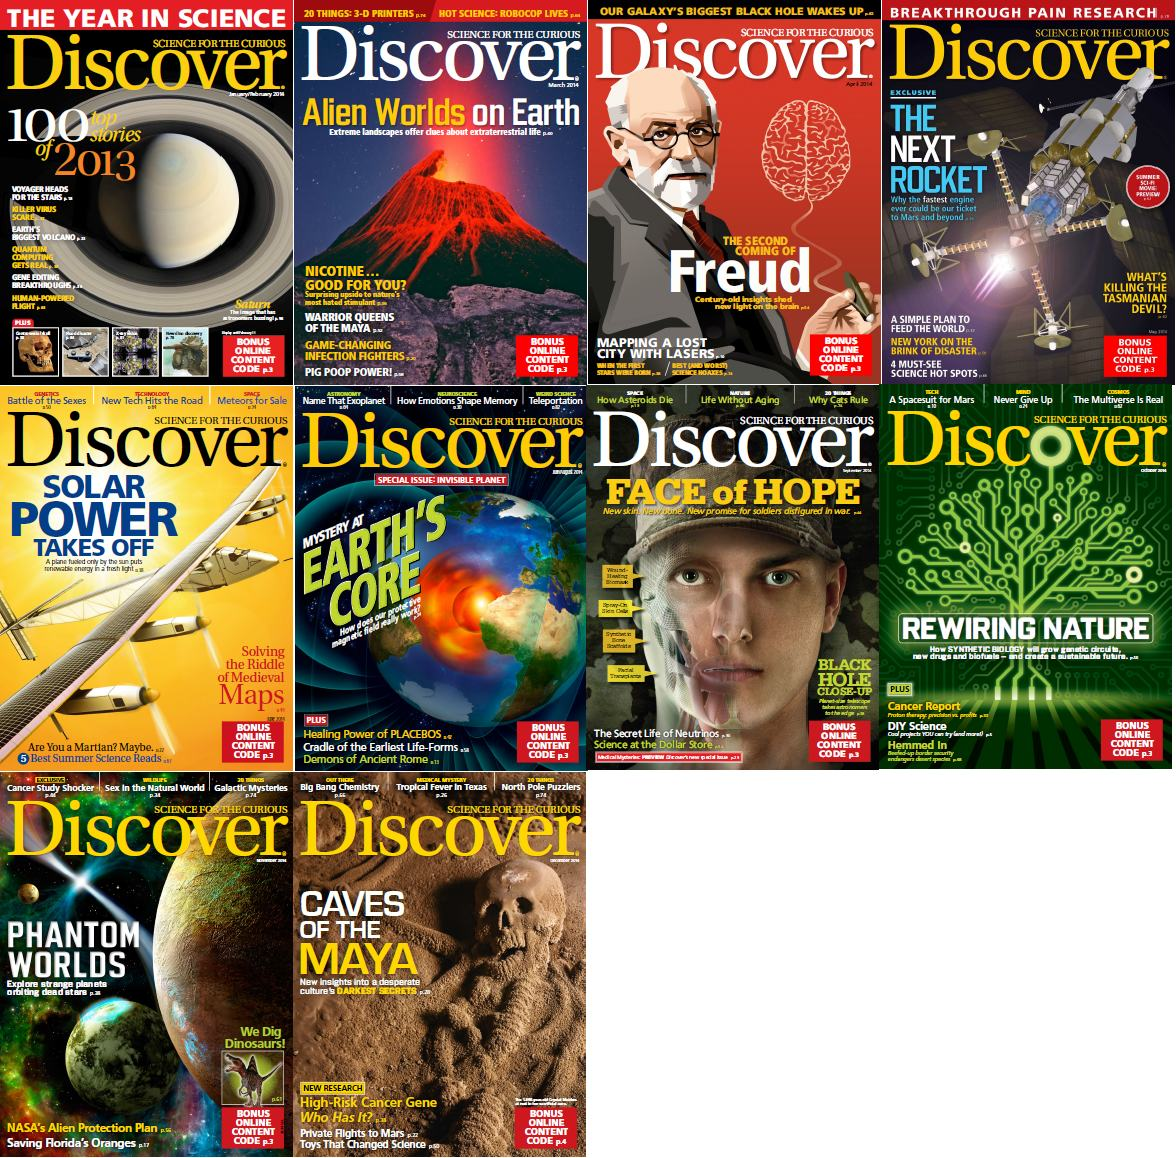 Discover Magazine - Full Year 2014 Issues Collection